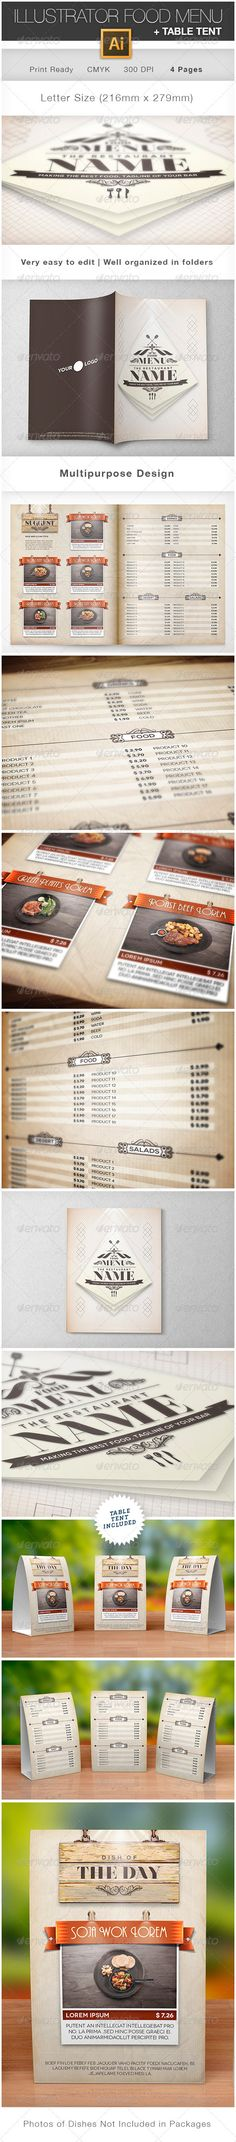 Elegant Food Menu Template - Food Menus Print Templates